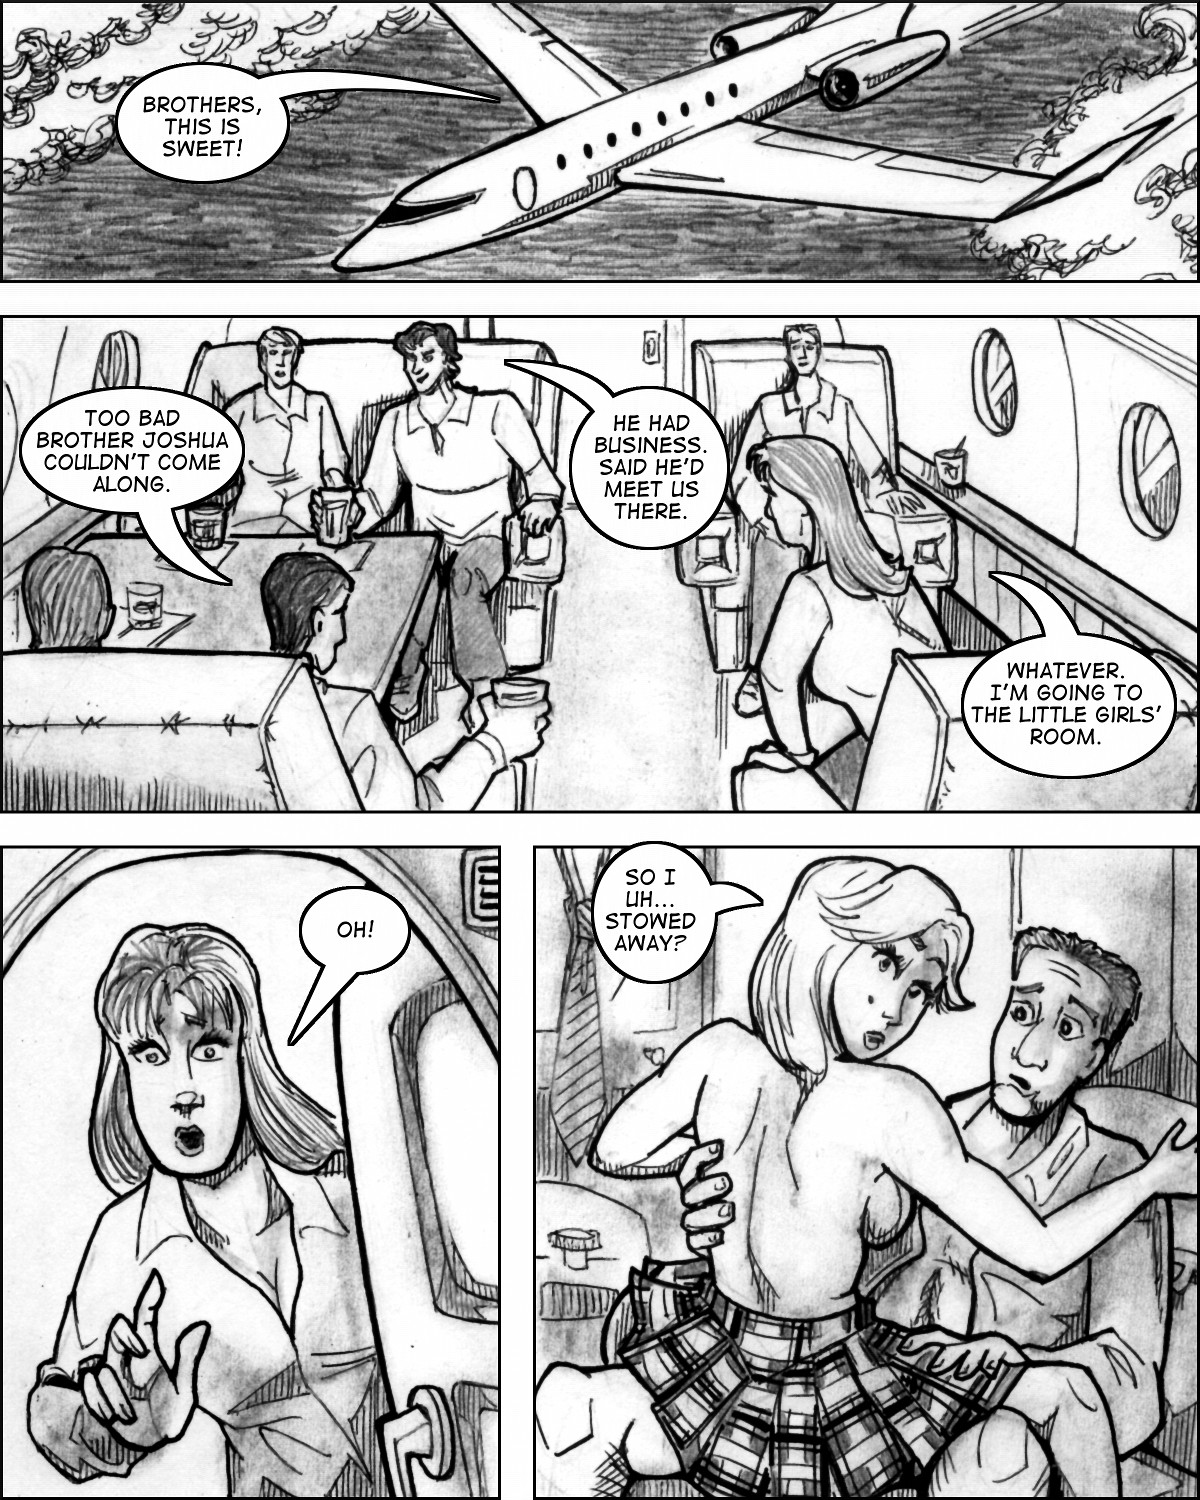 And someone also gets to join the mile-high club.